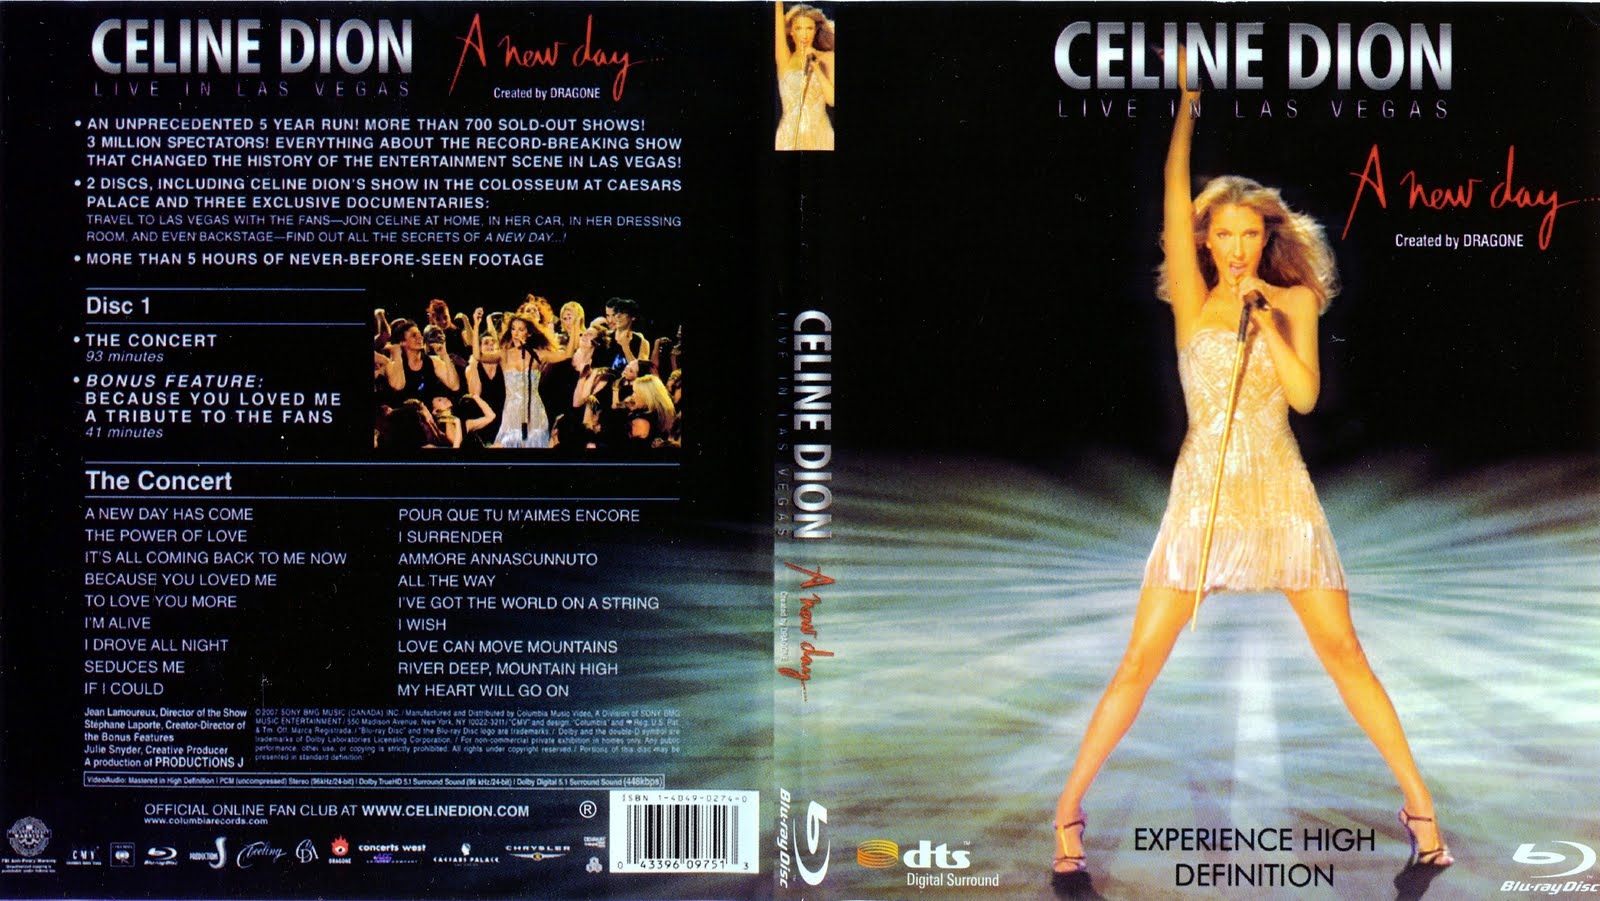 CELINE DION - A New Day - Live in Las